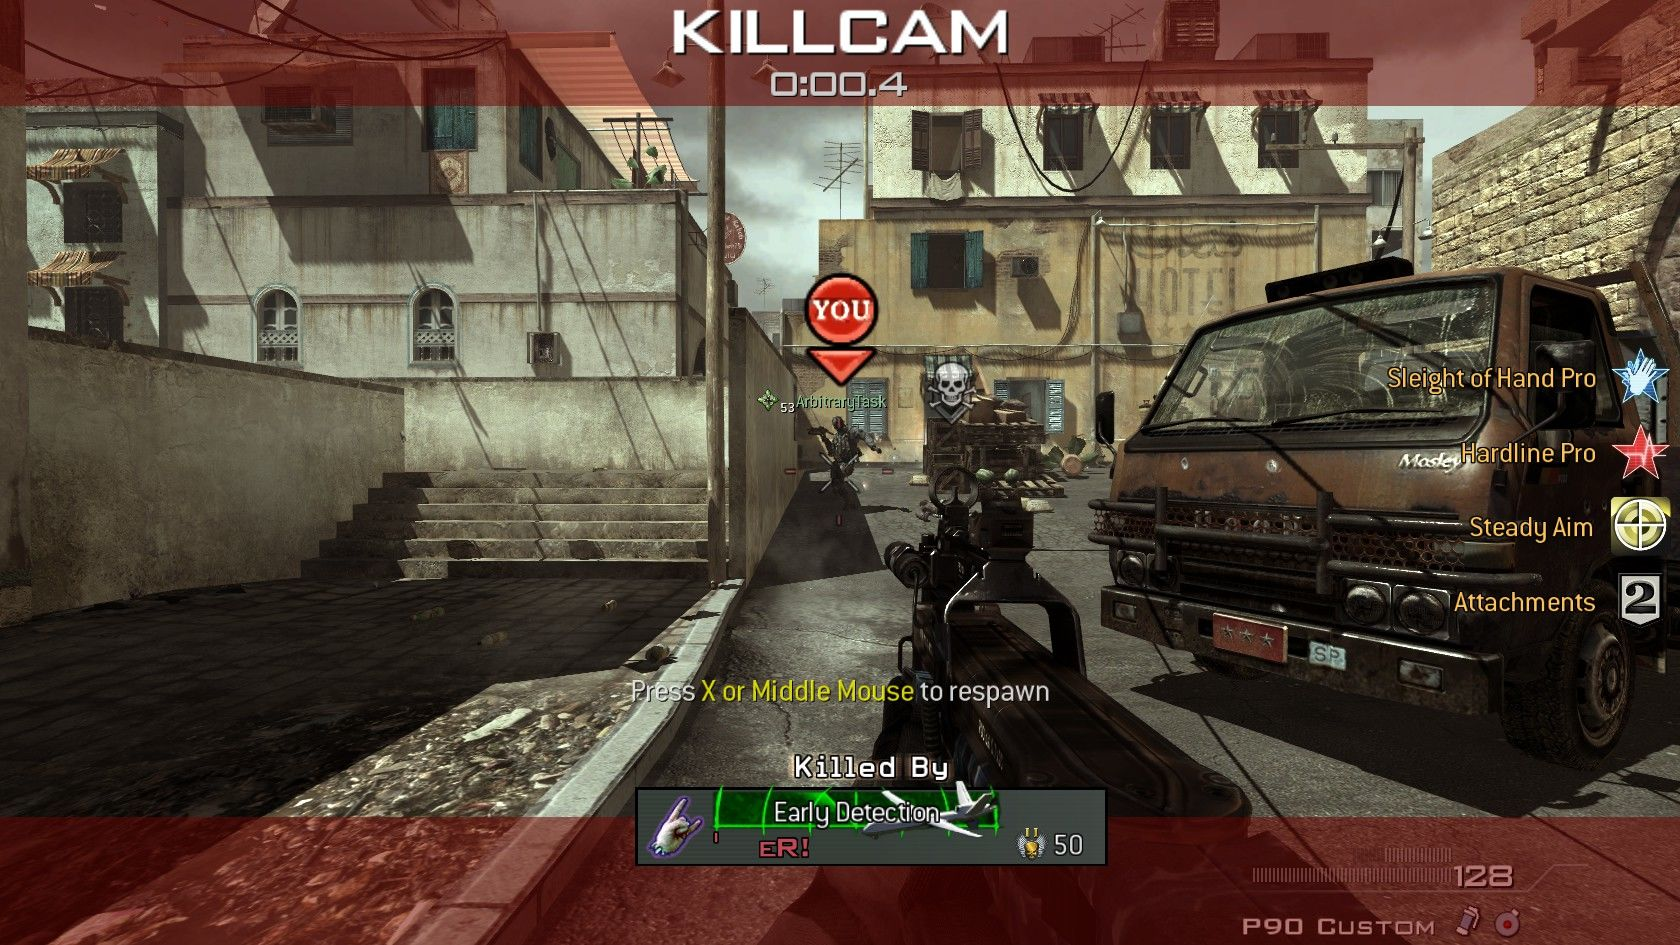 547589-call-of-duty-mw3-windows-screenshot-as-does-the-signature.jpg